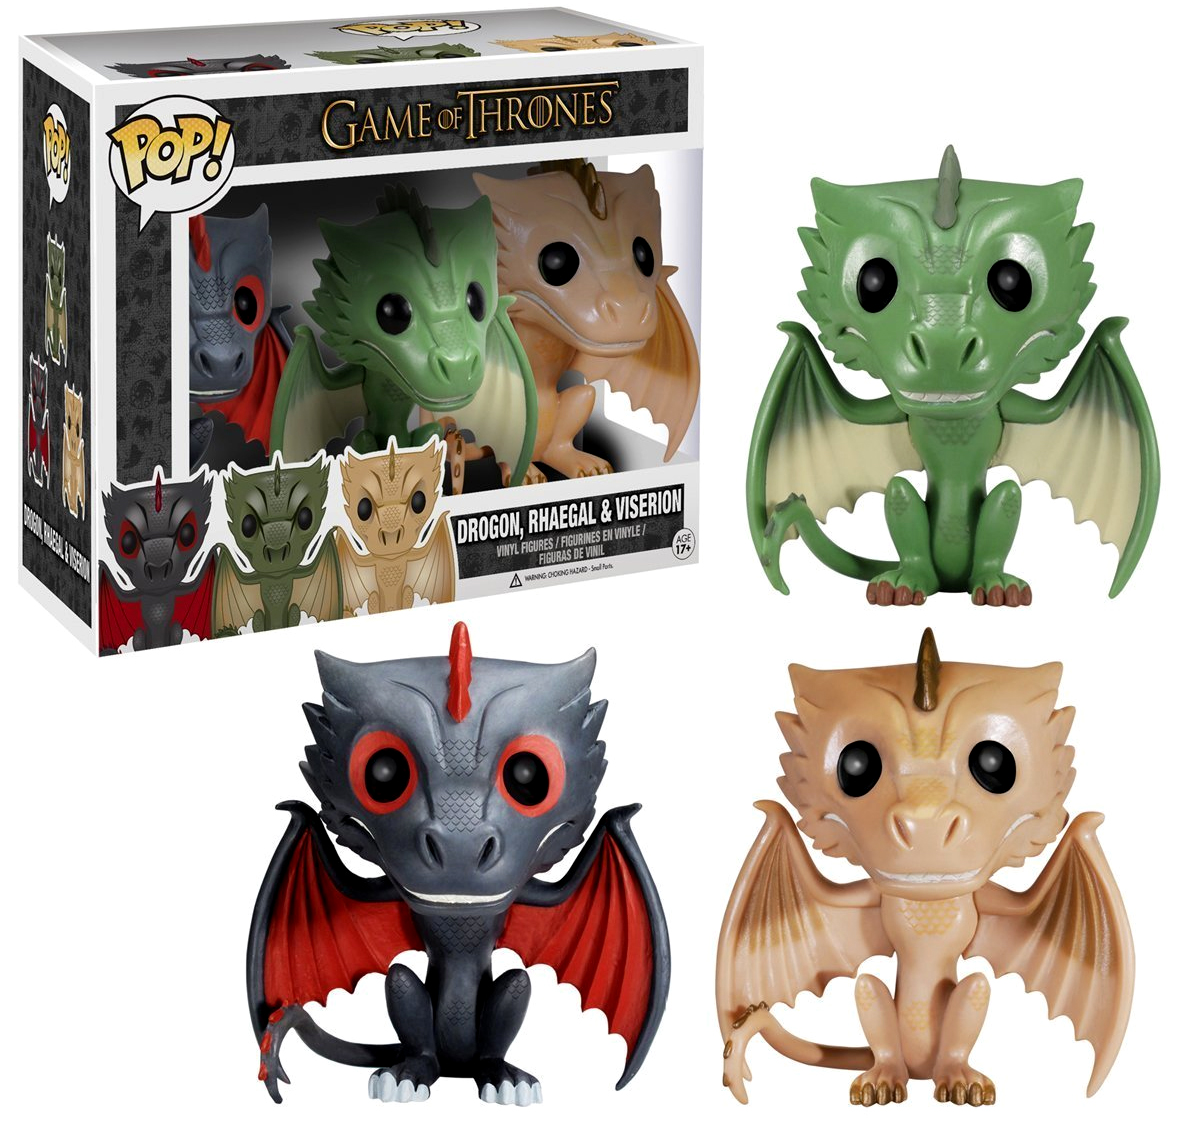 Funko POP Game of Thrones Figure: Where are My Dragons